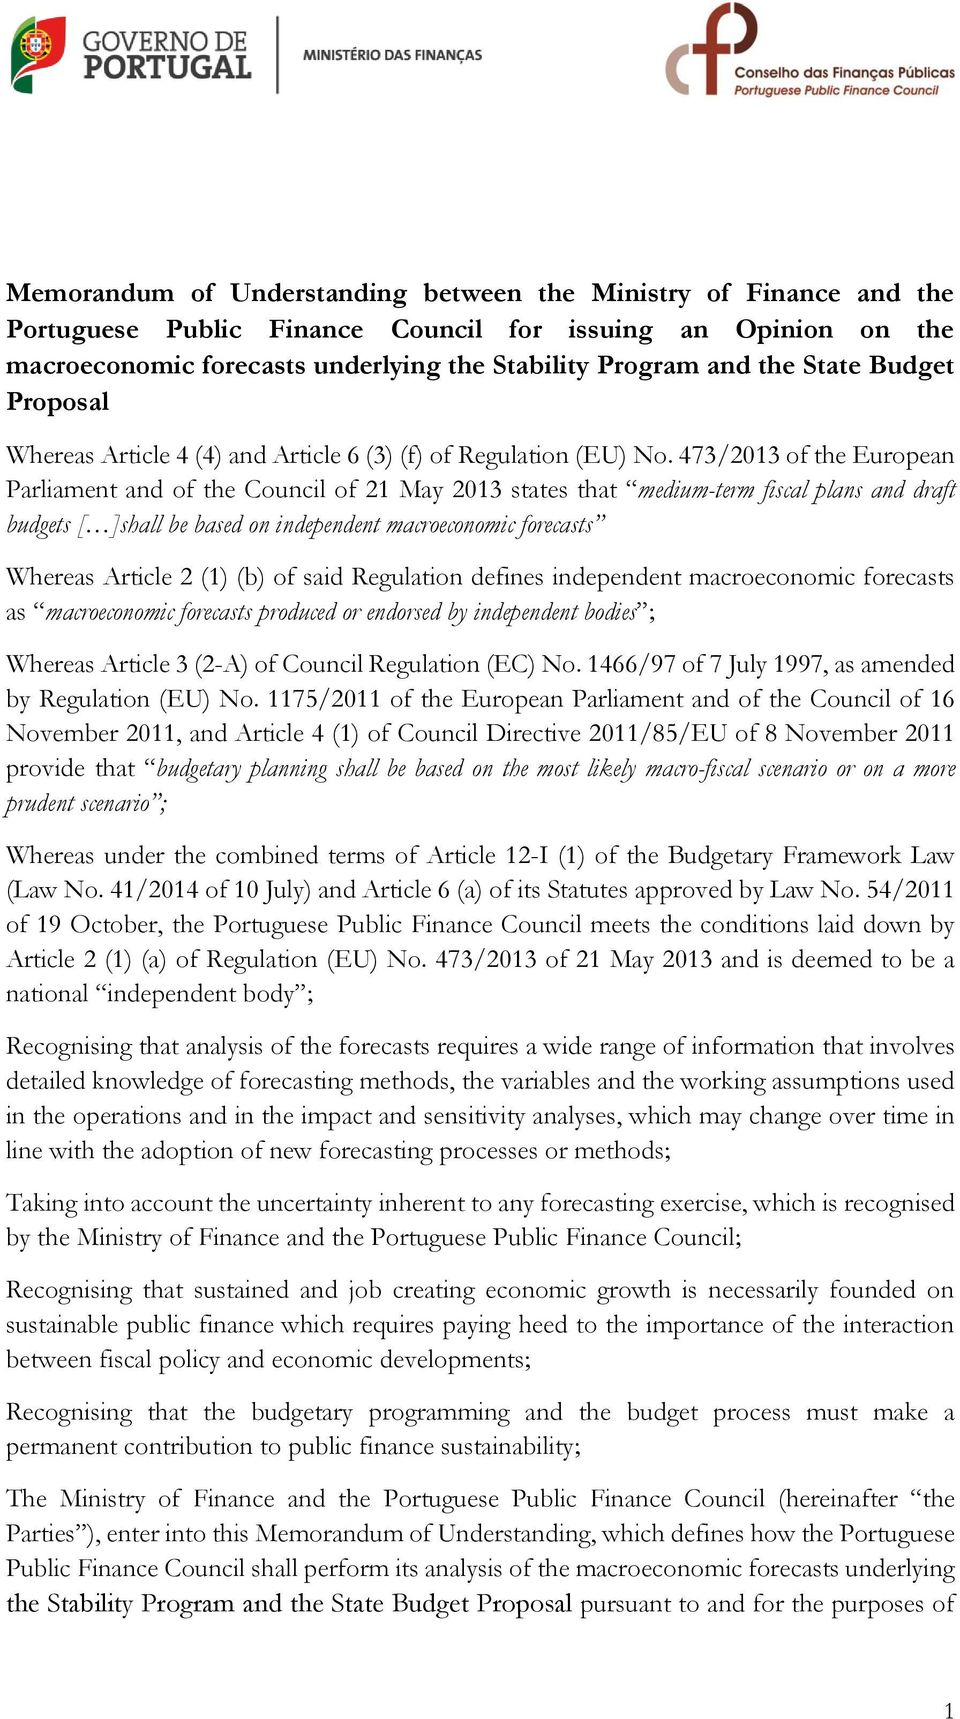 473/2013 of the European Parliament and of the Council of 21 May 2013 states that medium-term fiscal plans and draft budgets [ ]shall be based on independent macroeconomic forecasts Whereas Article 2